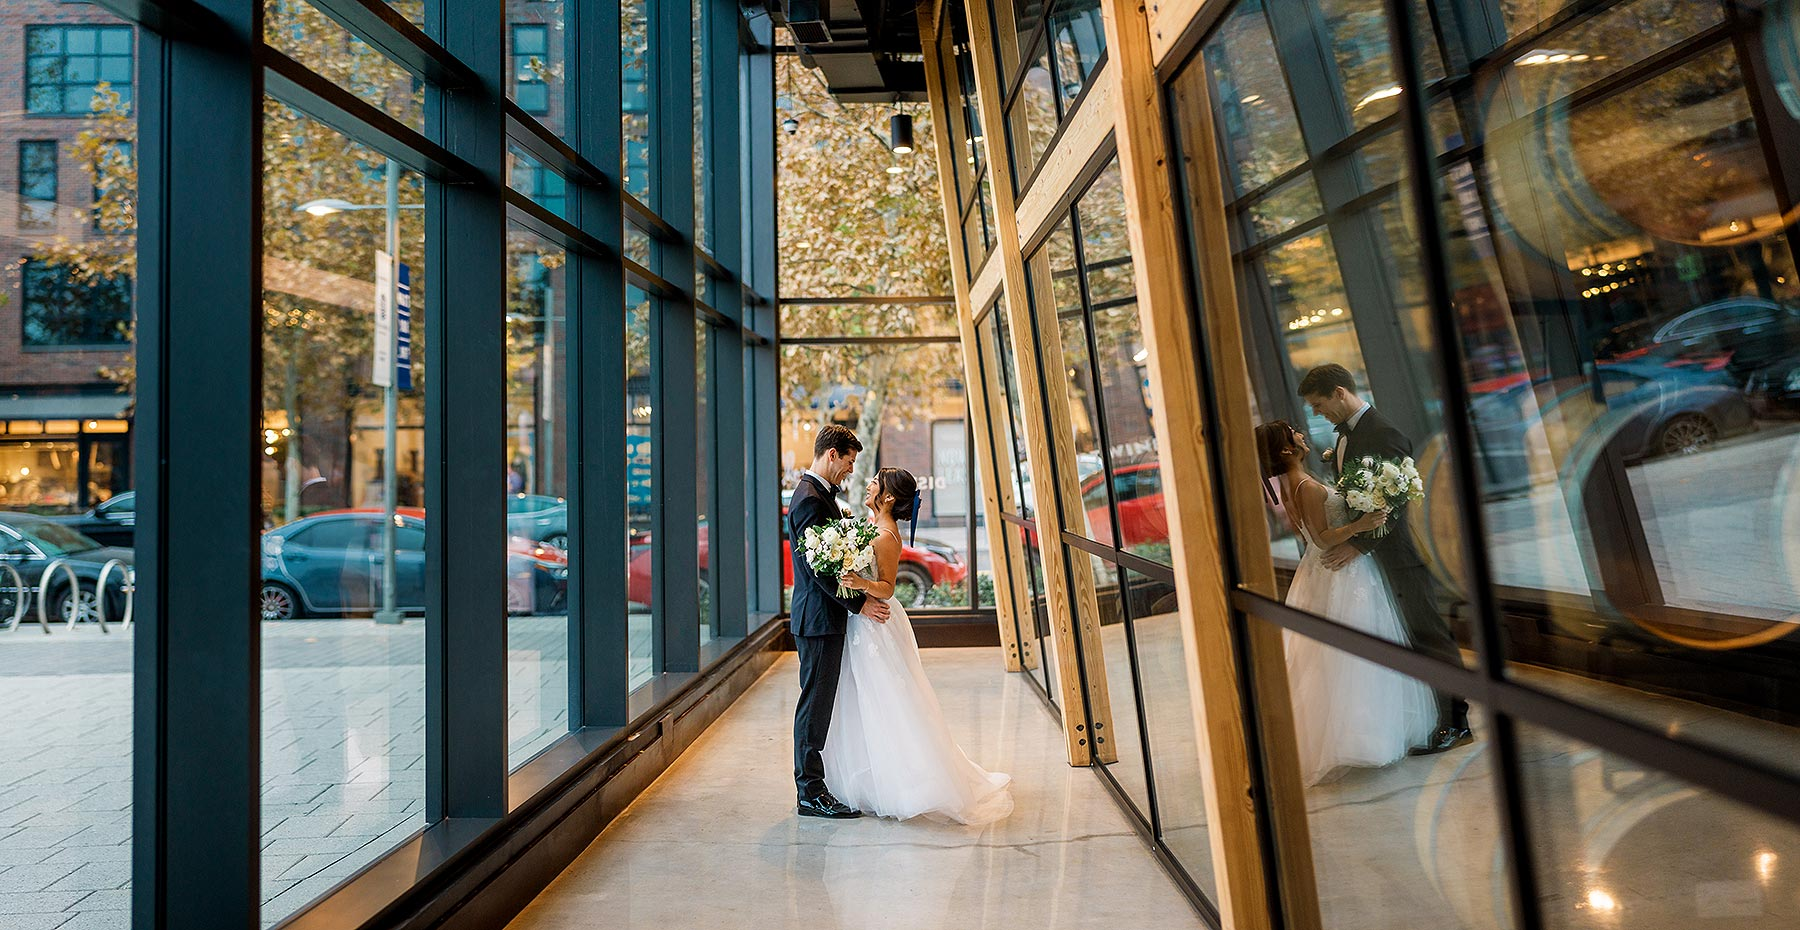 creative wedding photo in glass window hallway at district winery wedding by Washington DC Wedding Photographer Adam Mason